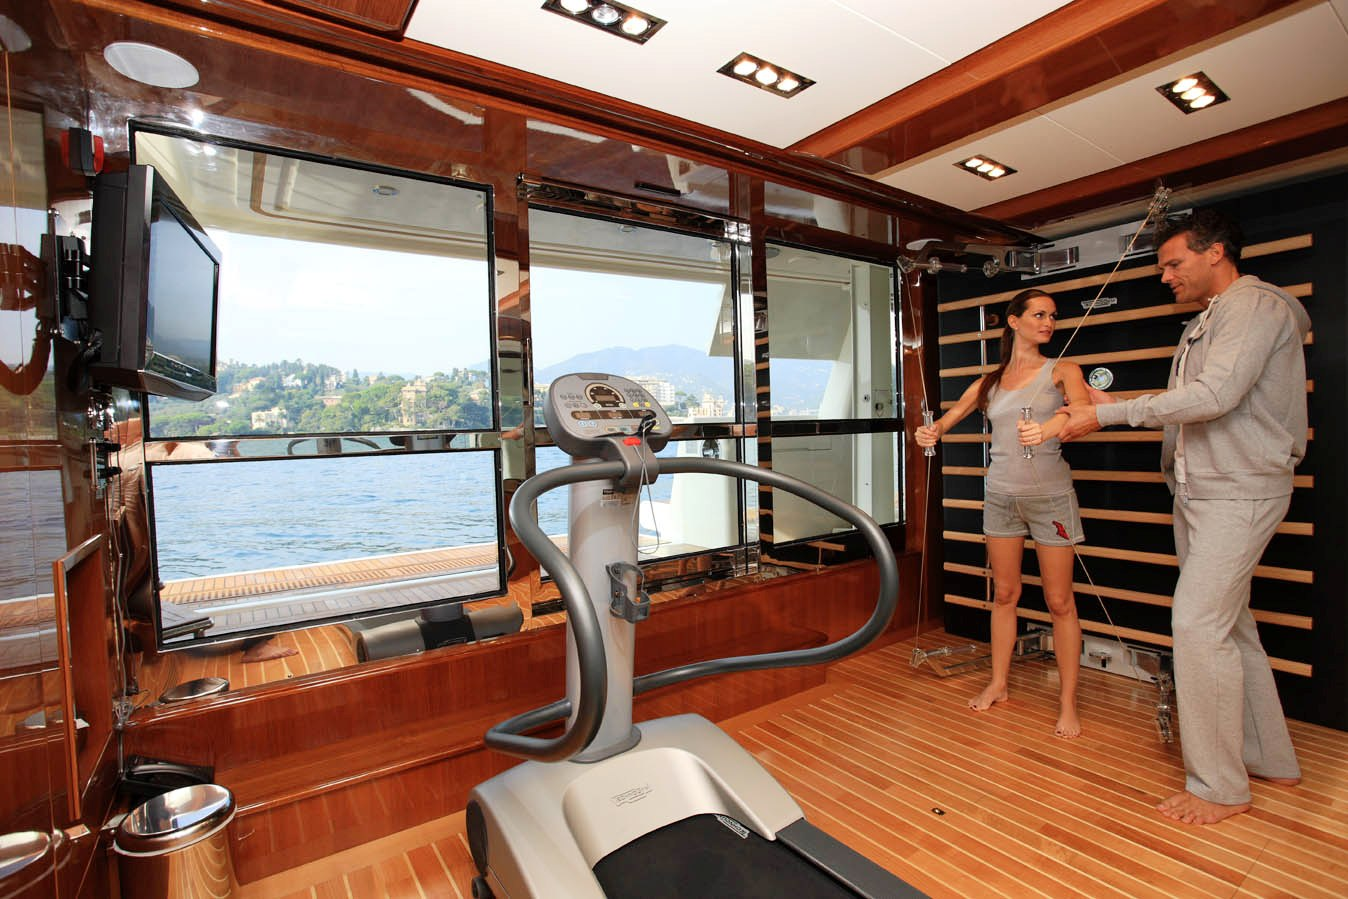 Hana gym luxury yacht browser by charterworld for Luxury home gym